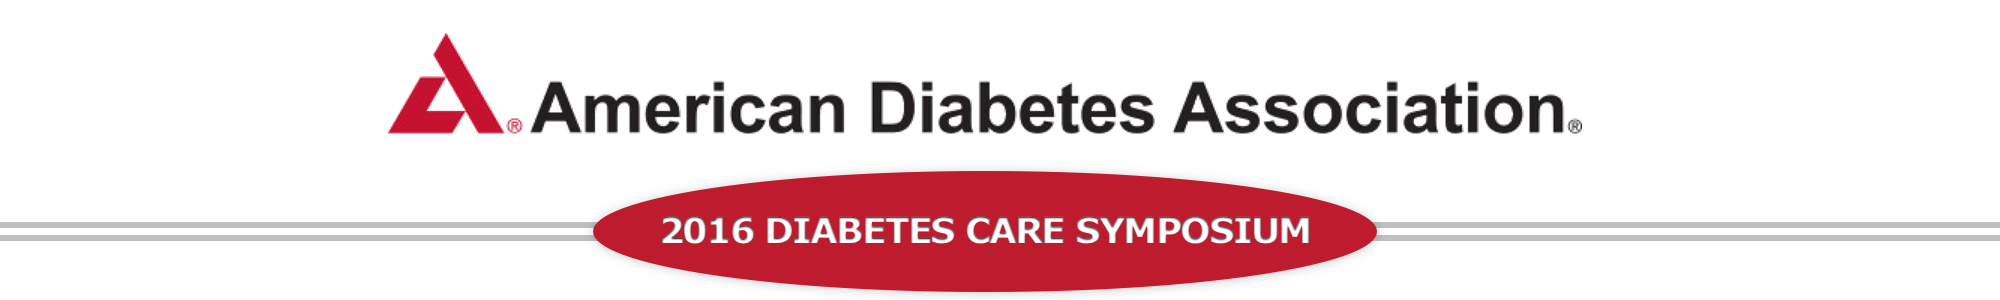 2016 Diabetes Care Symposium-Indiana